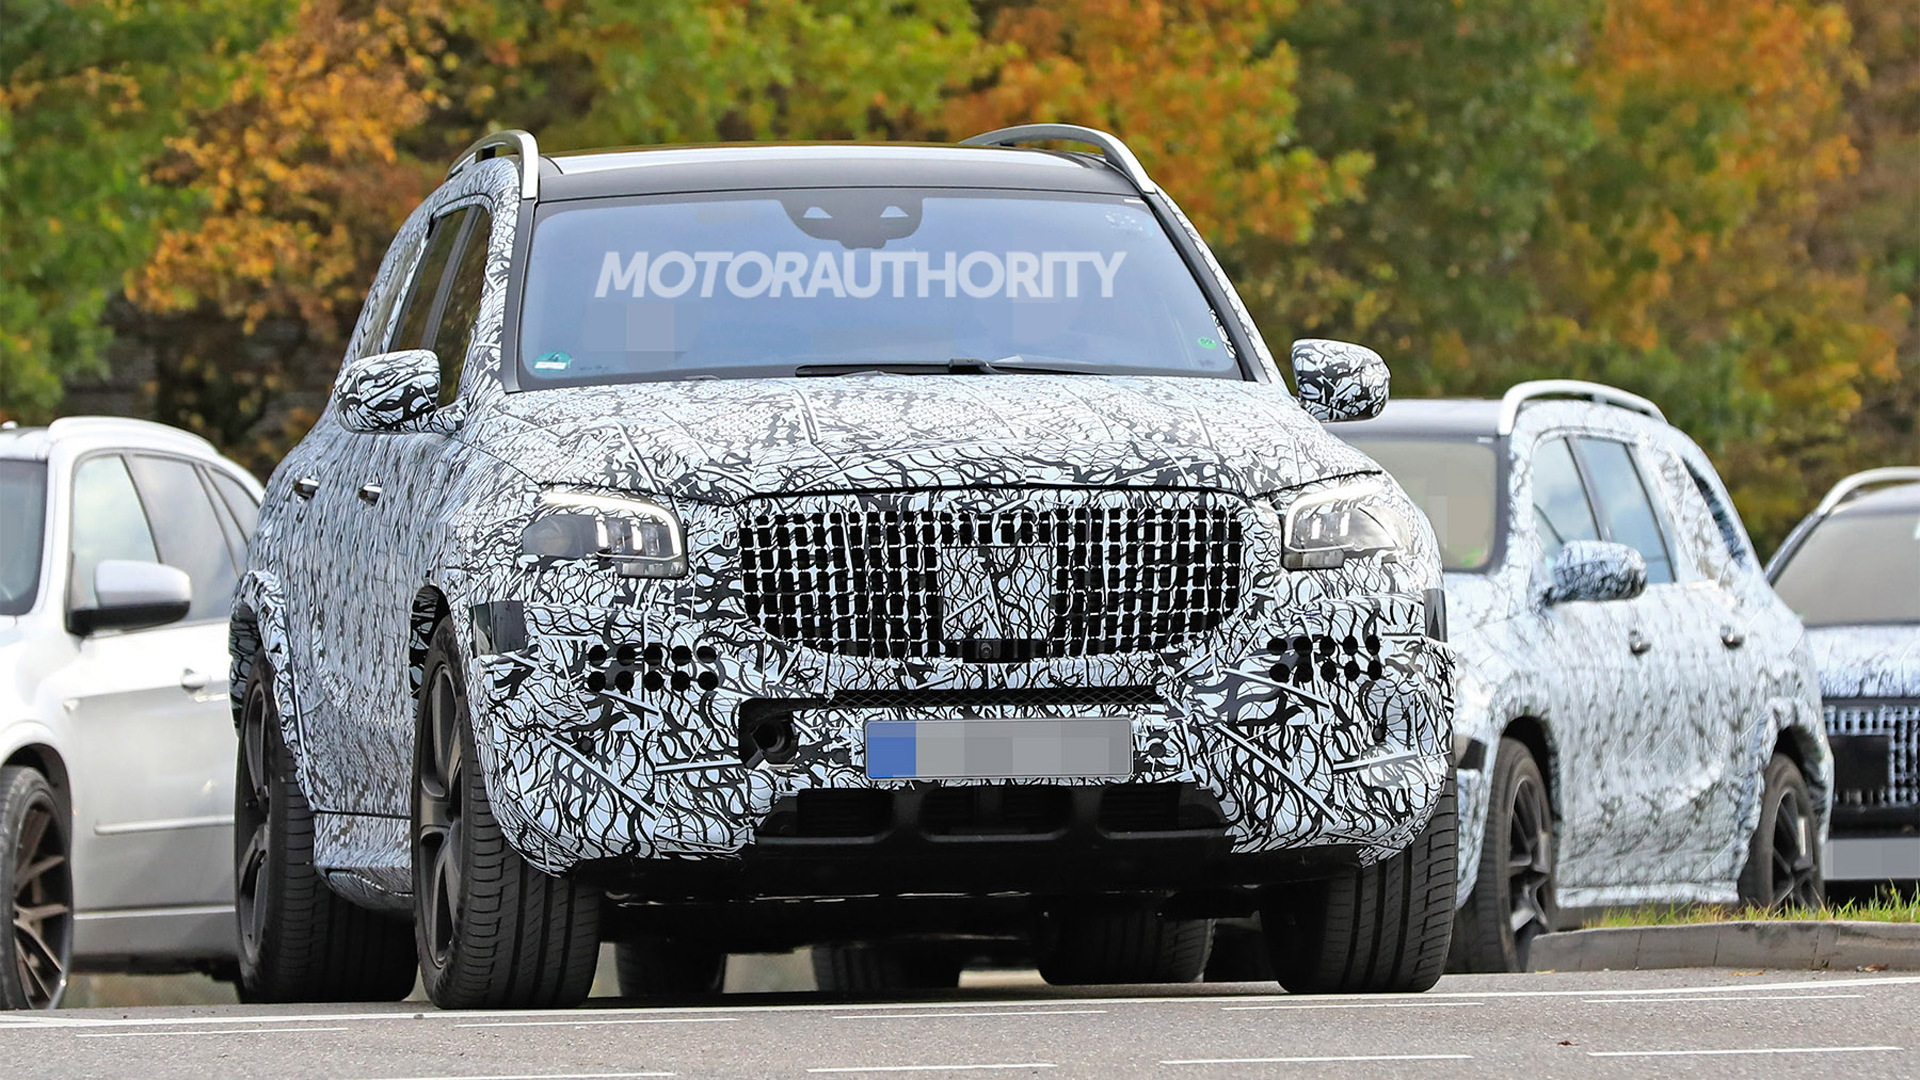 2021 Mercedes-Maybach GLS spy shots - Image via S. Baldauf/SB-Medien